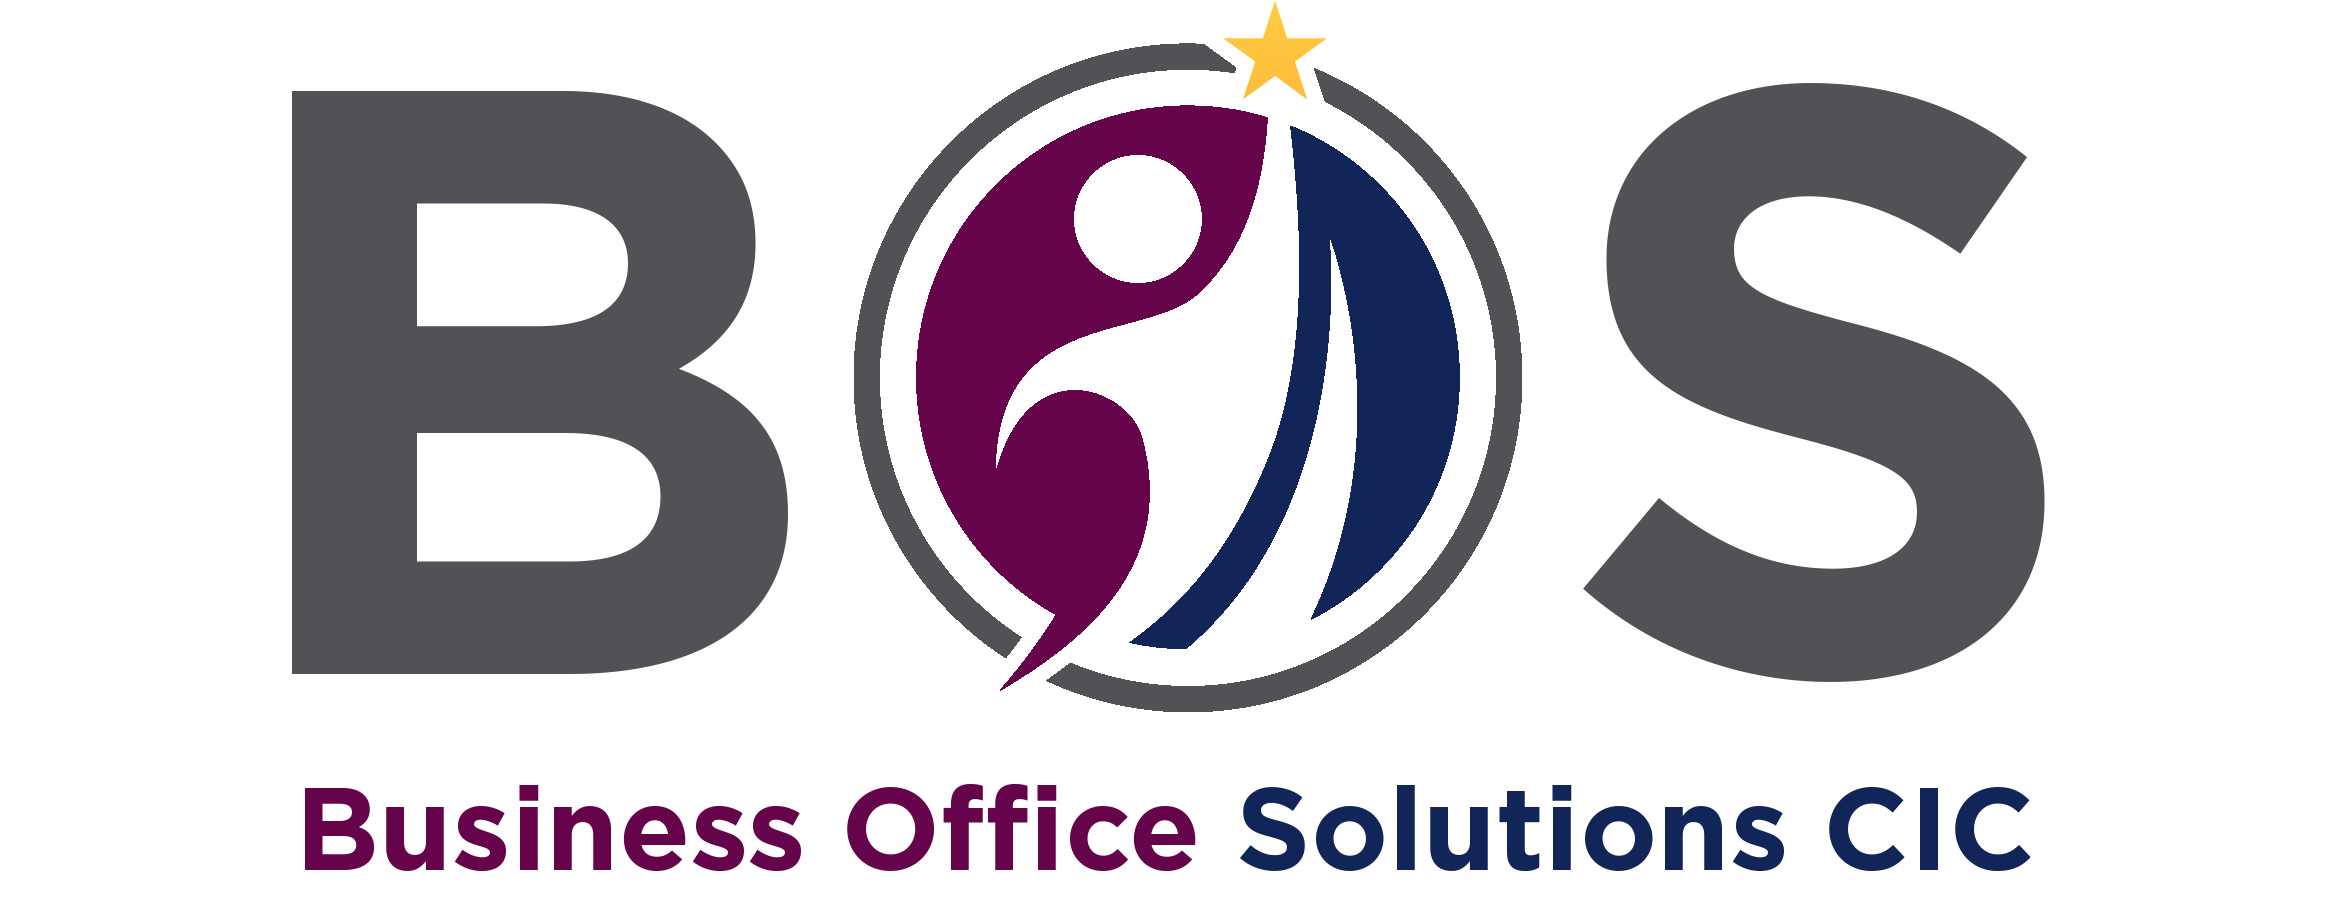 Business Office Solutions CIC